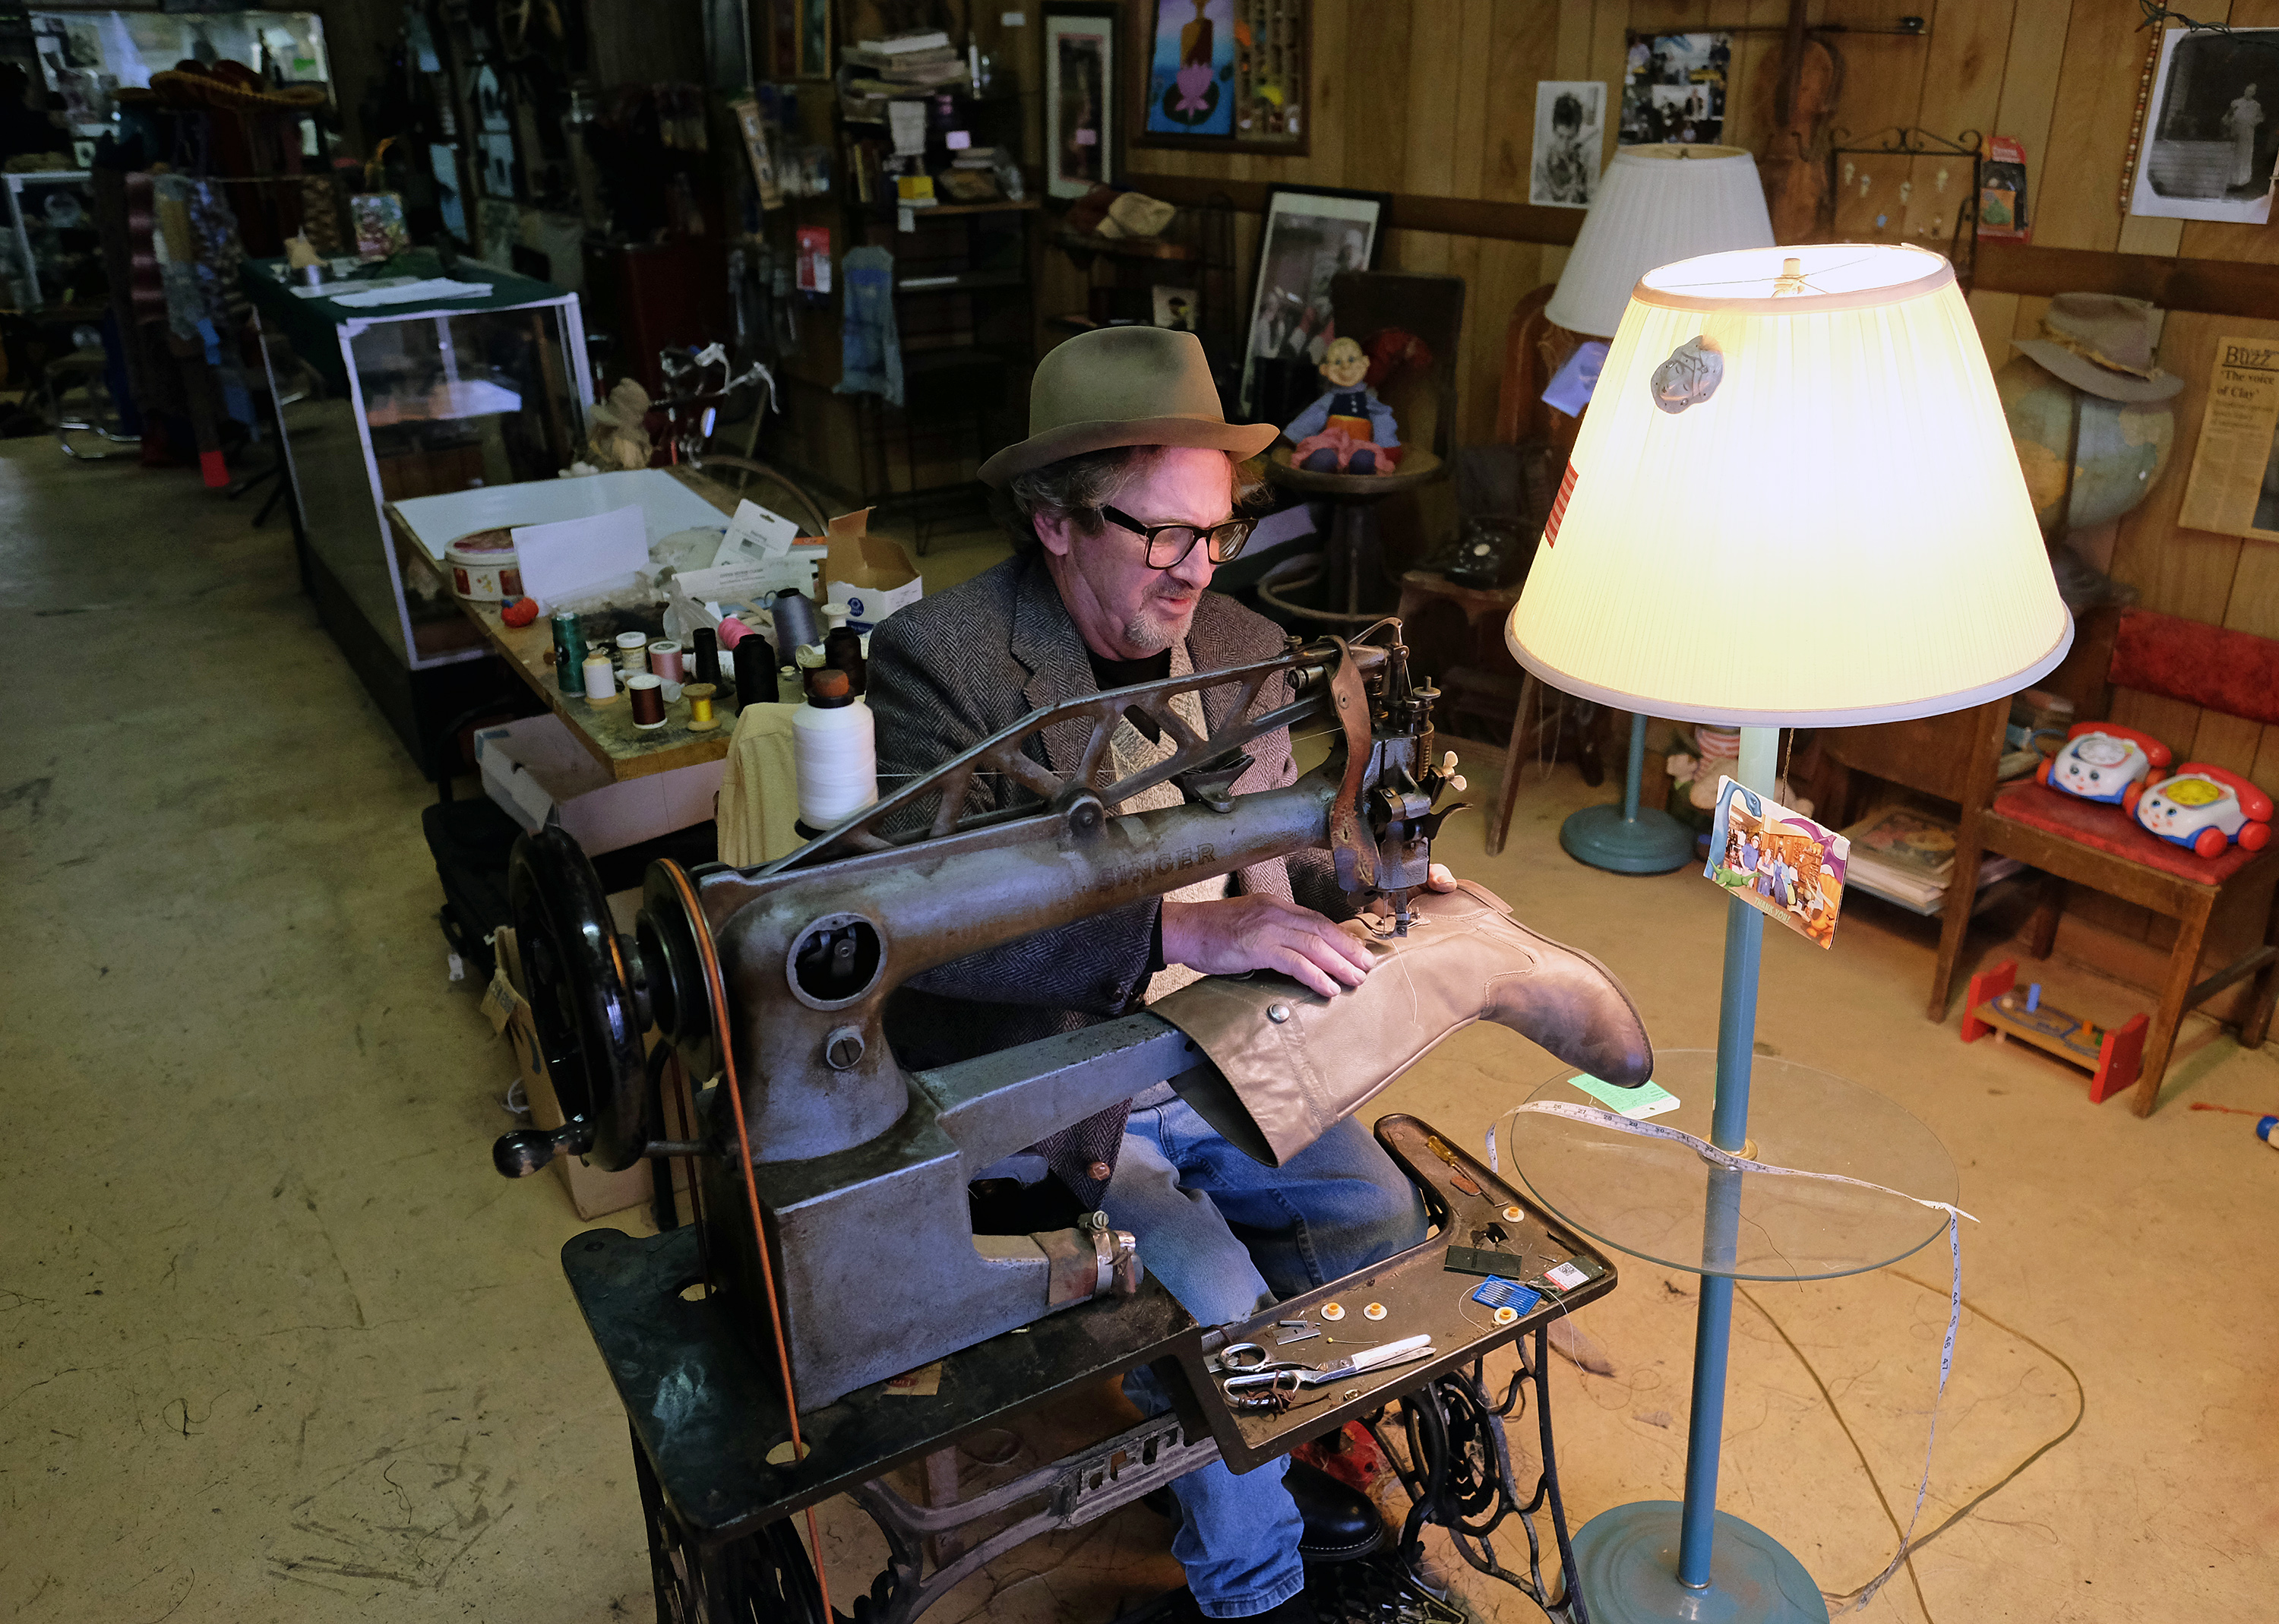 David Young sews a boot on an old Singer treadle sewing machine,Wednesday Nov. 23, 2016. (Photo by Norm Shafer).